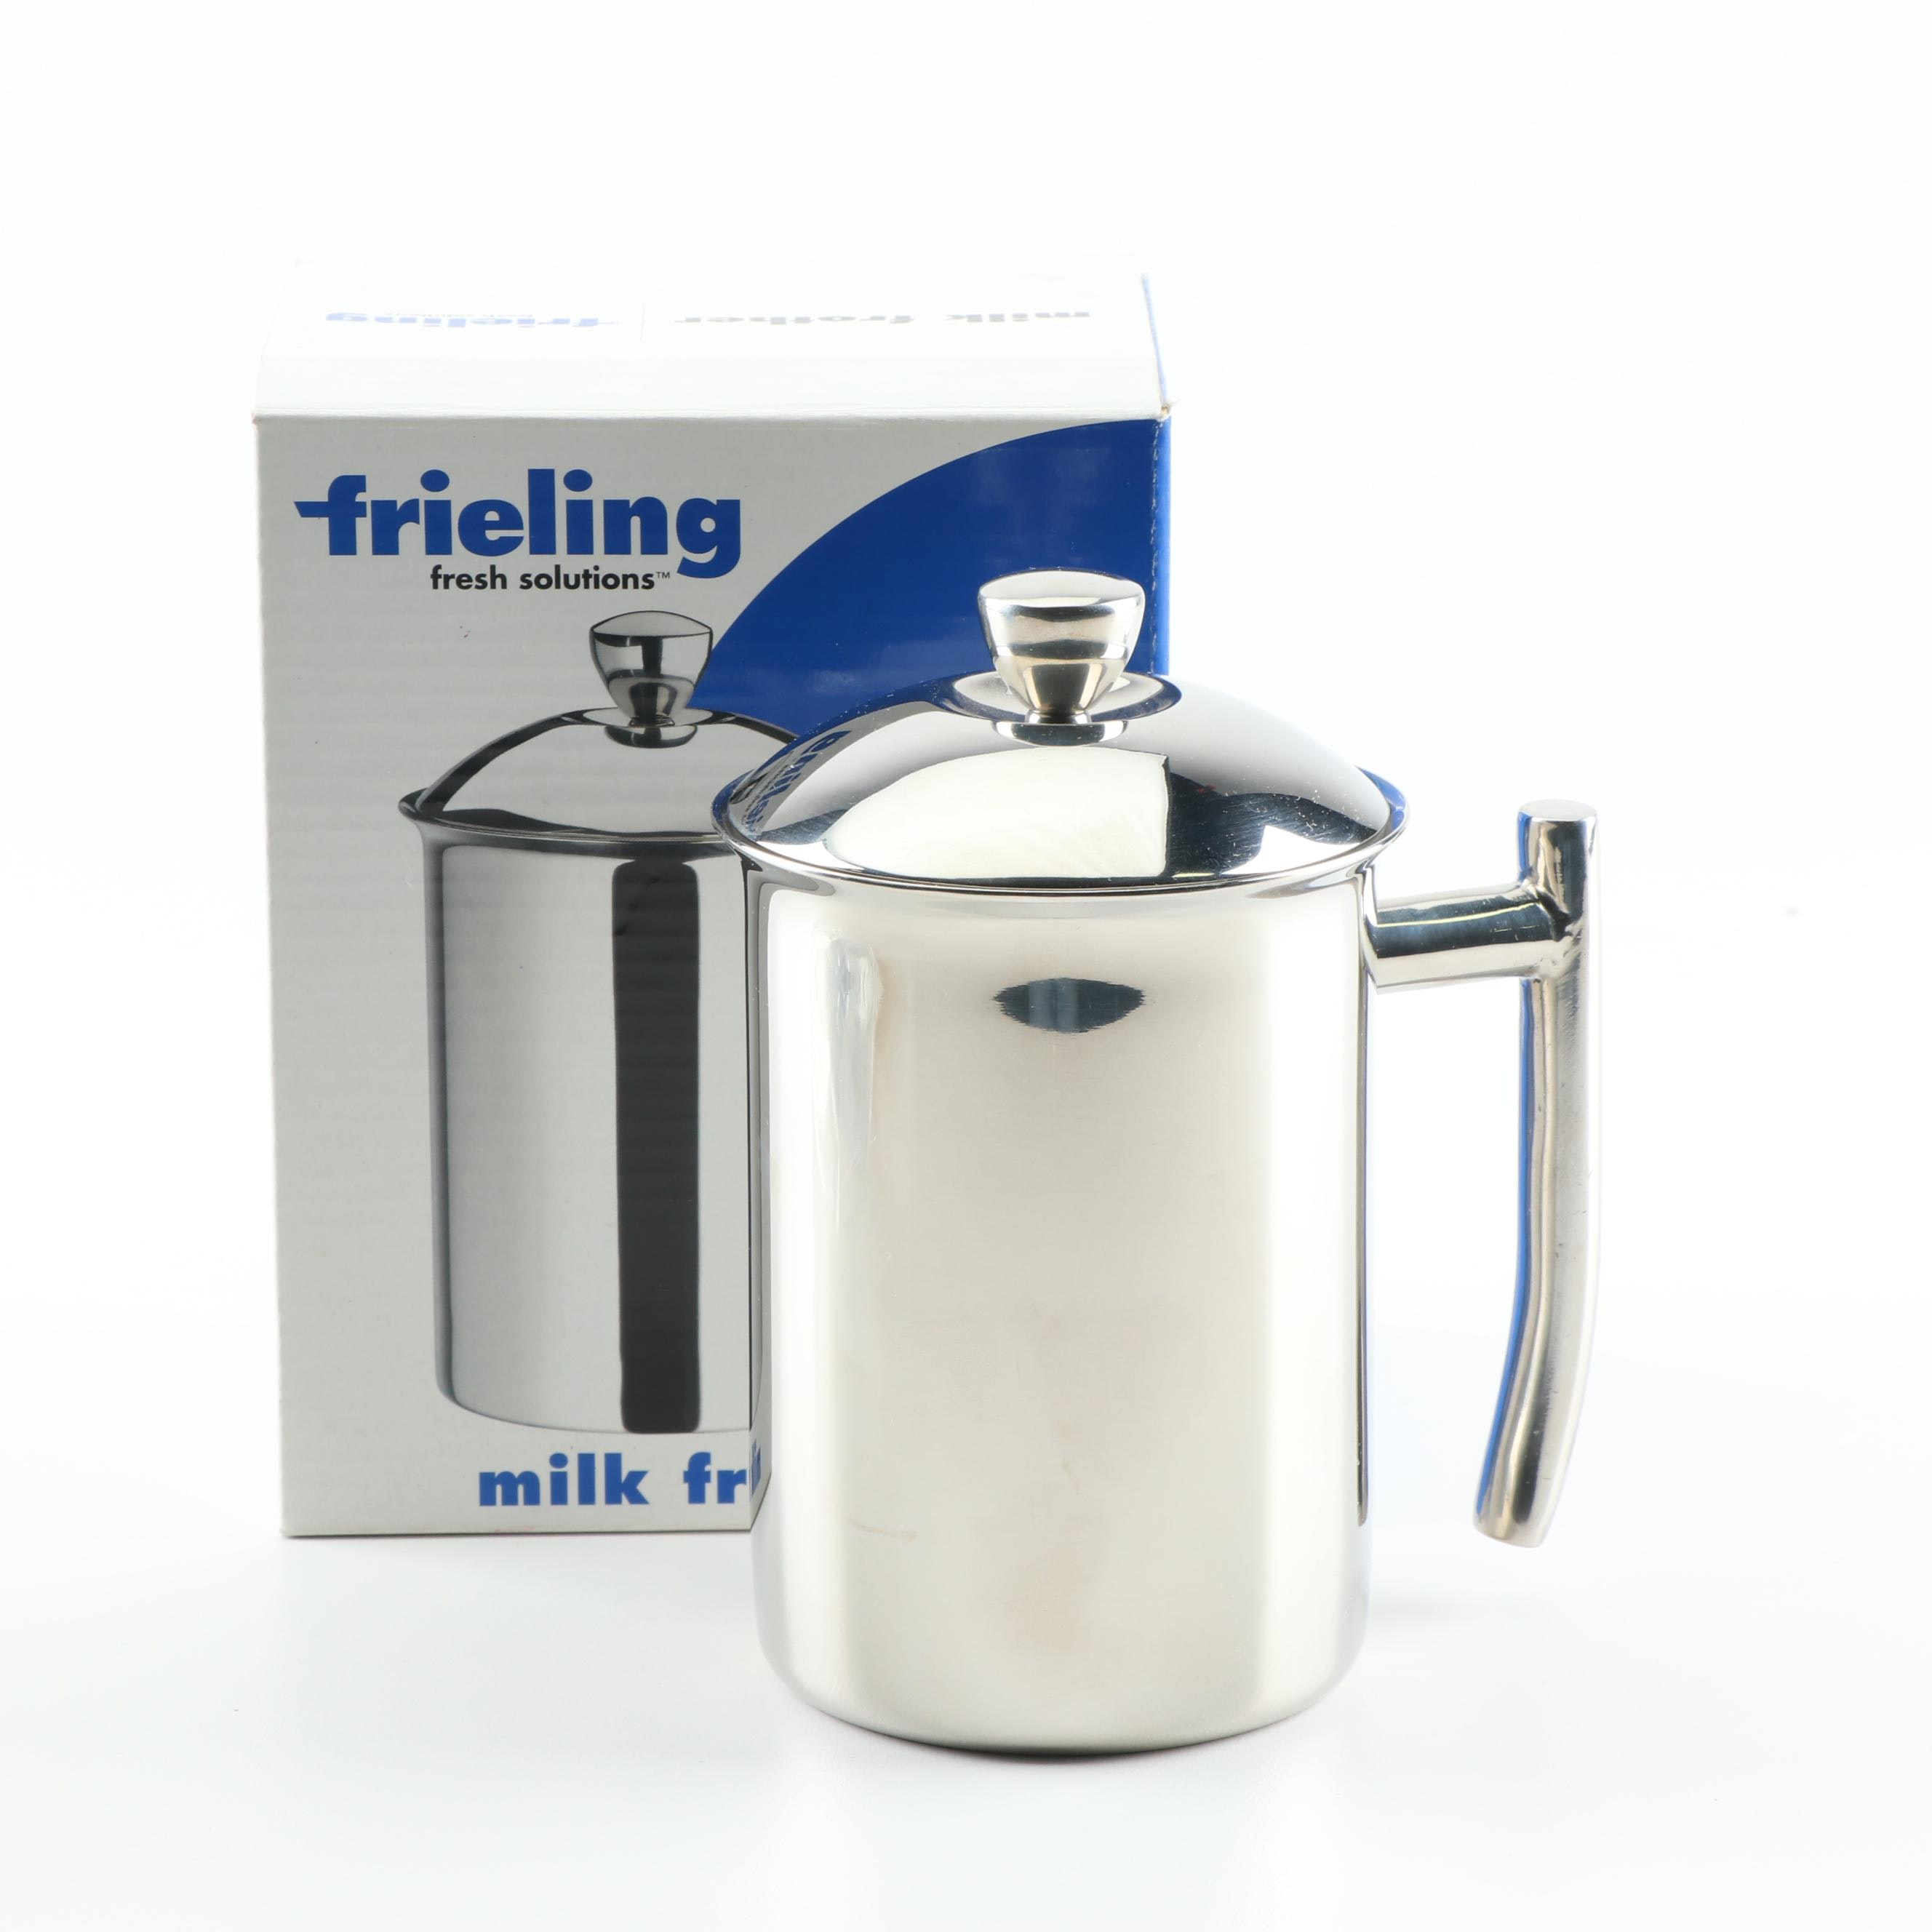 Frieling Stainless Steel Milk Frother